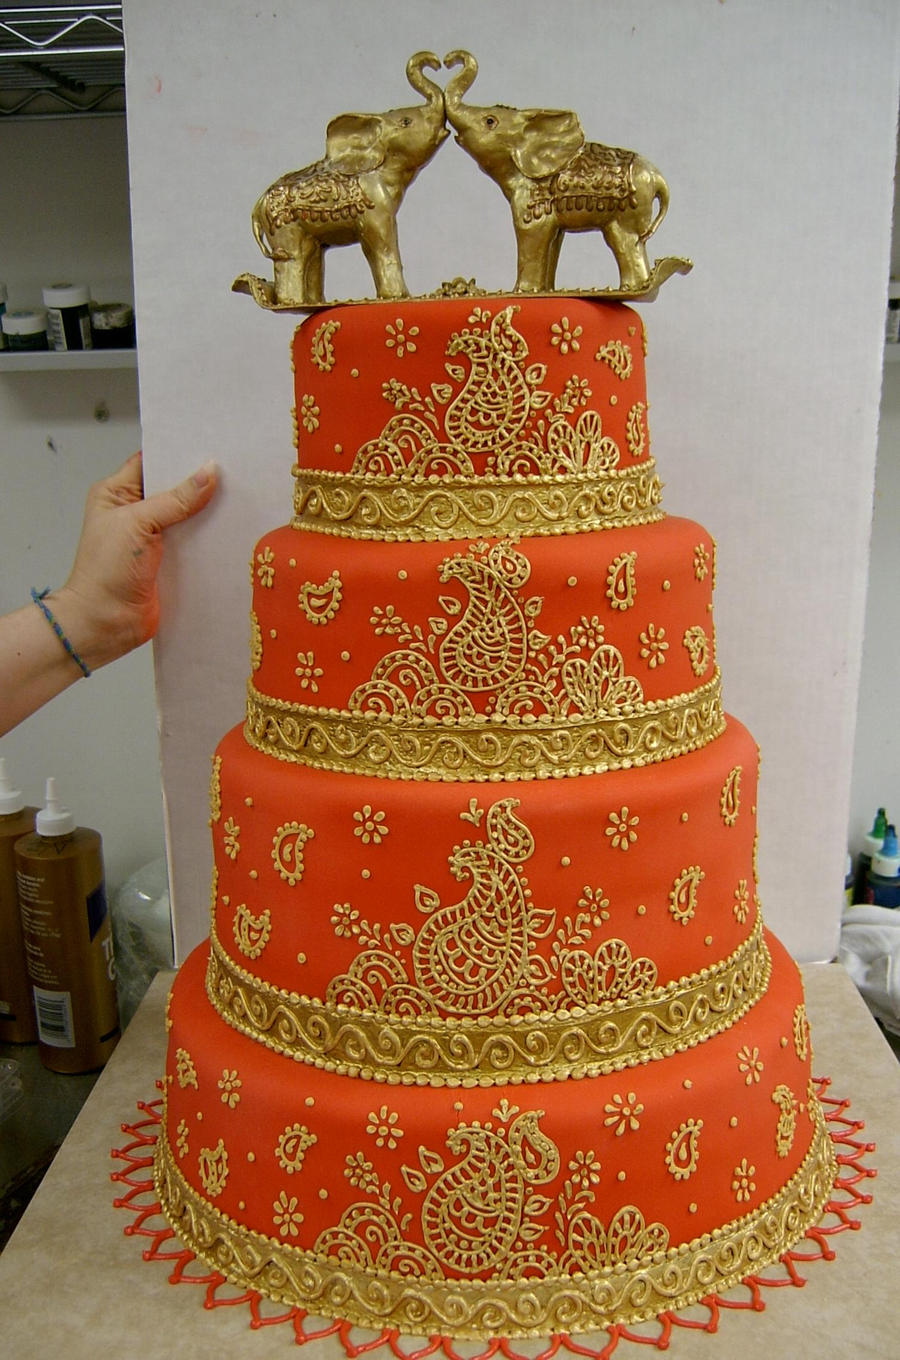 ... Red Indian Wedding Cake By The EvIl Plankton